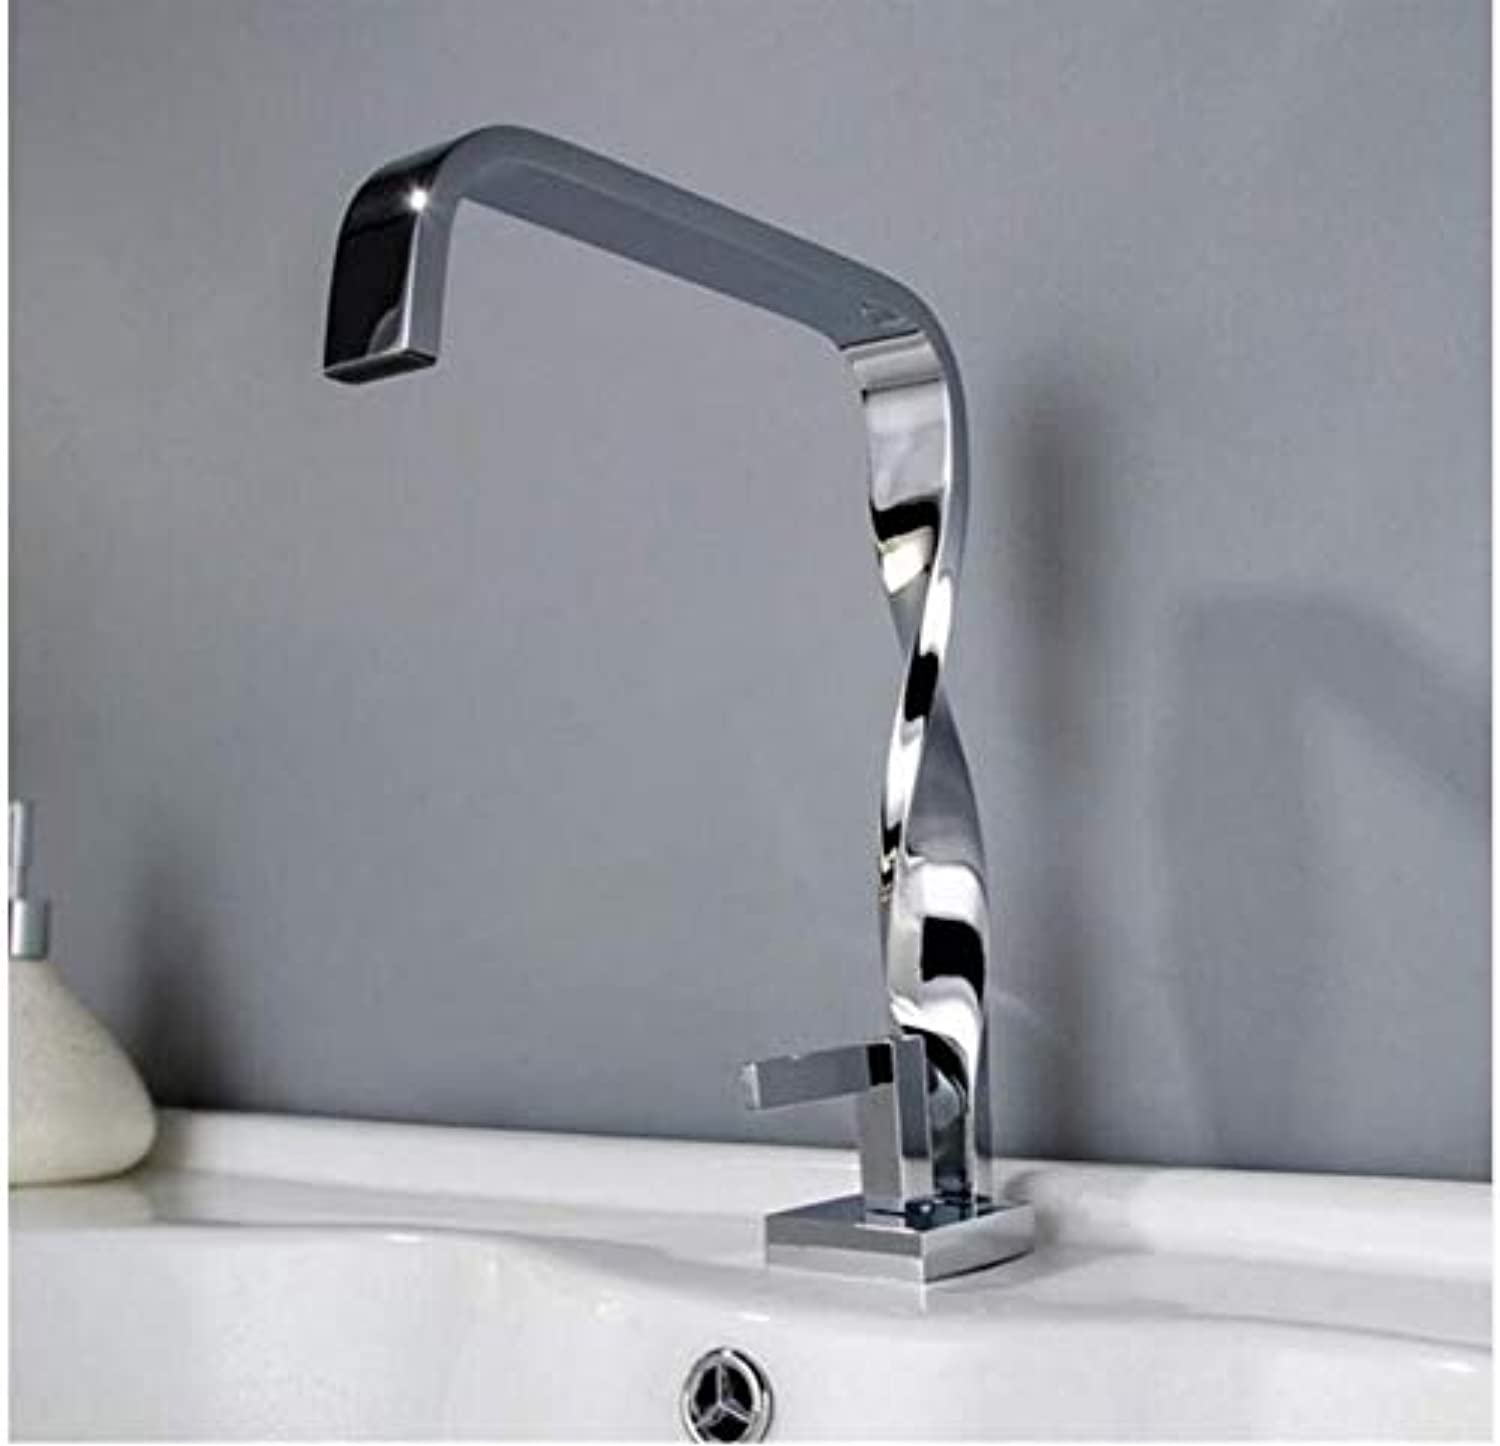 Modern Double Basin Sink Hot and Cold Water Faucetdeck Mounted Bathroom Basin Water Mixer Fashion Design